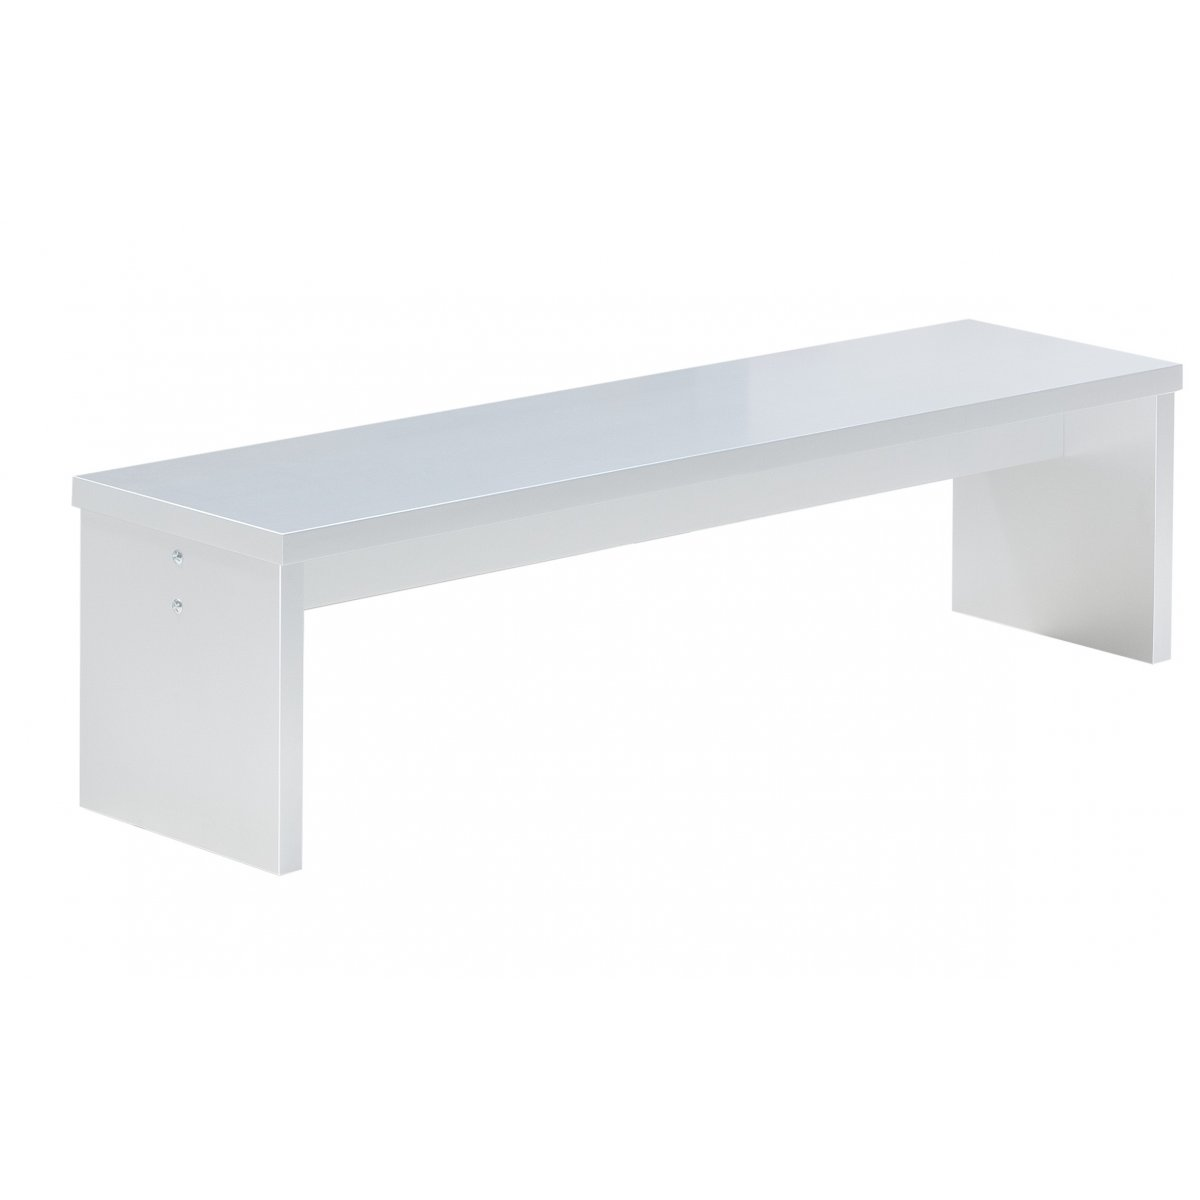 Banc Laque Blanc - Banc Laqu Blanc Pour Table Billard Transformable[mjhdah]http://www.ajorka.com/media/catalog/product/cache/3/image/9df78eab33525d08d6e5fb8d27136e95/A/T/ATLANTIQUE_SIEGE00337_01_1.jpg